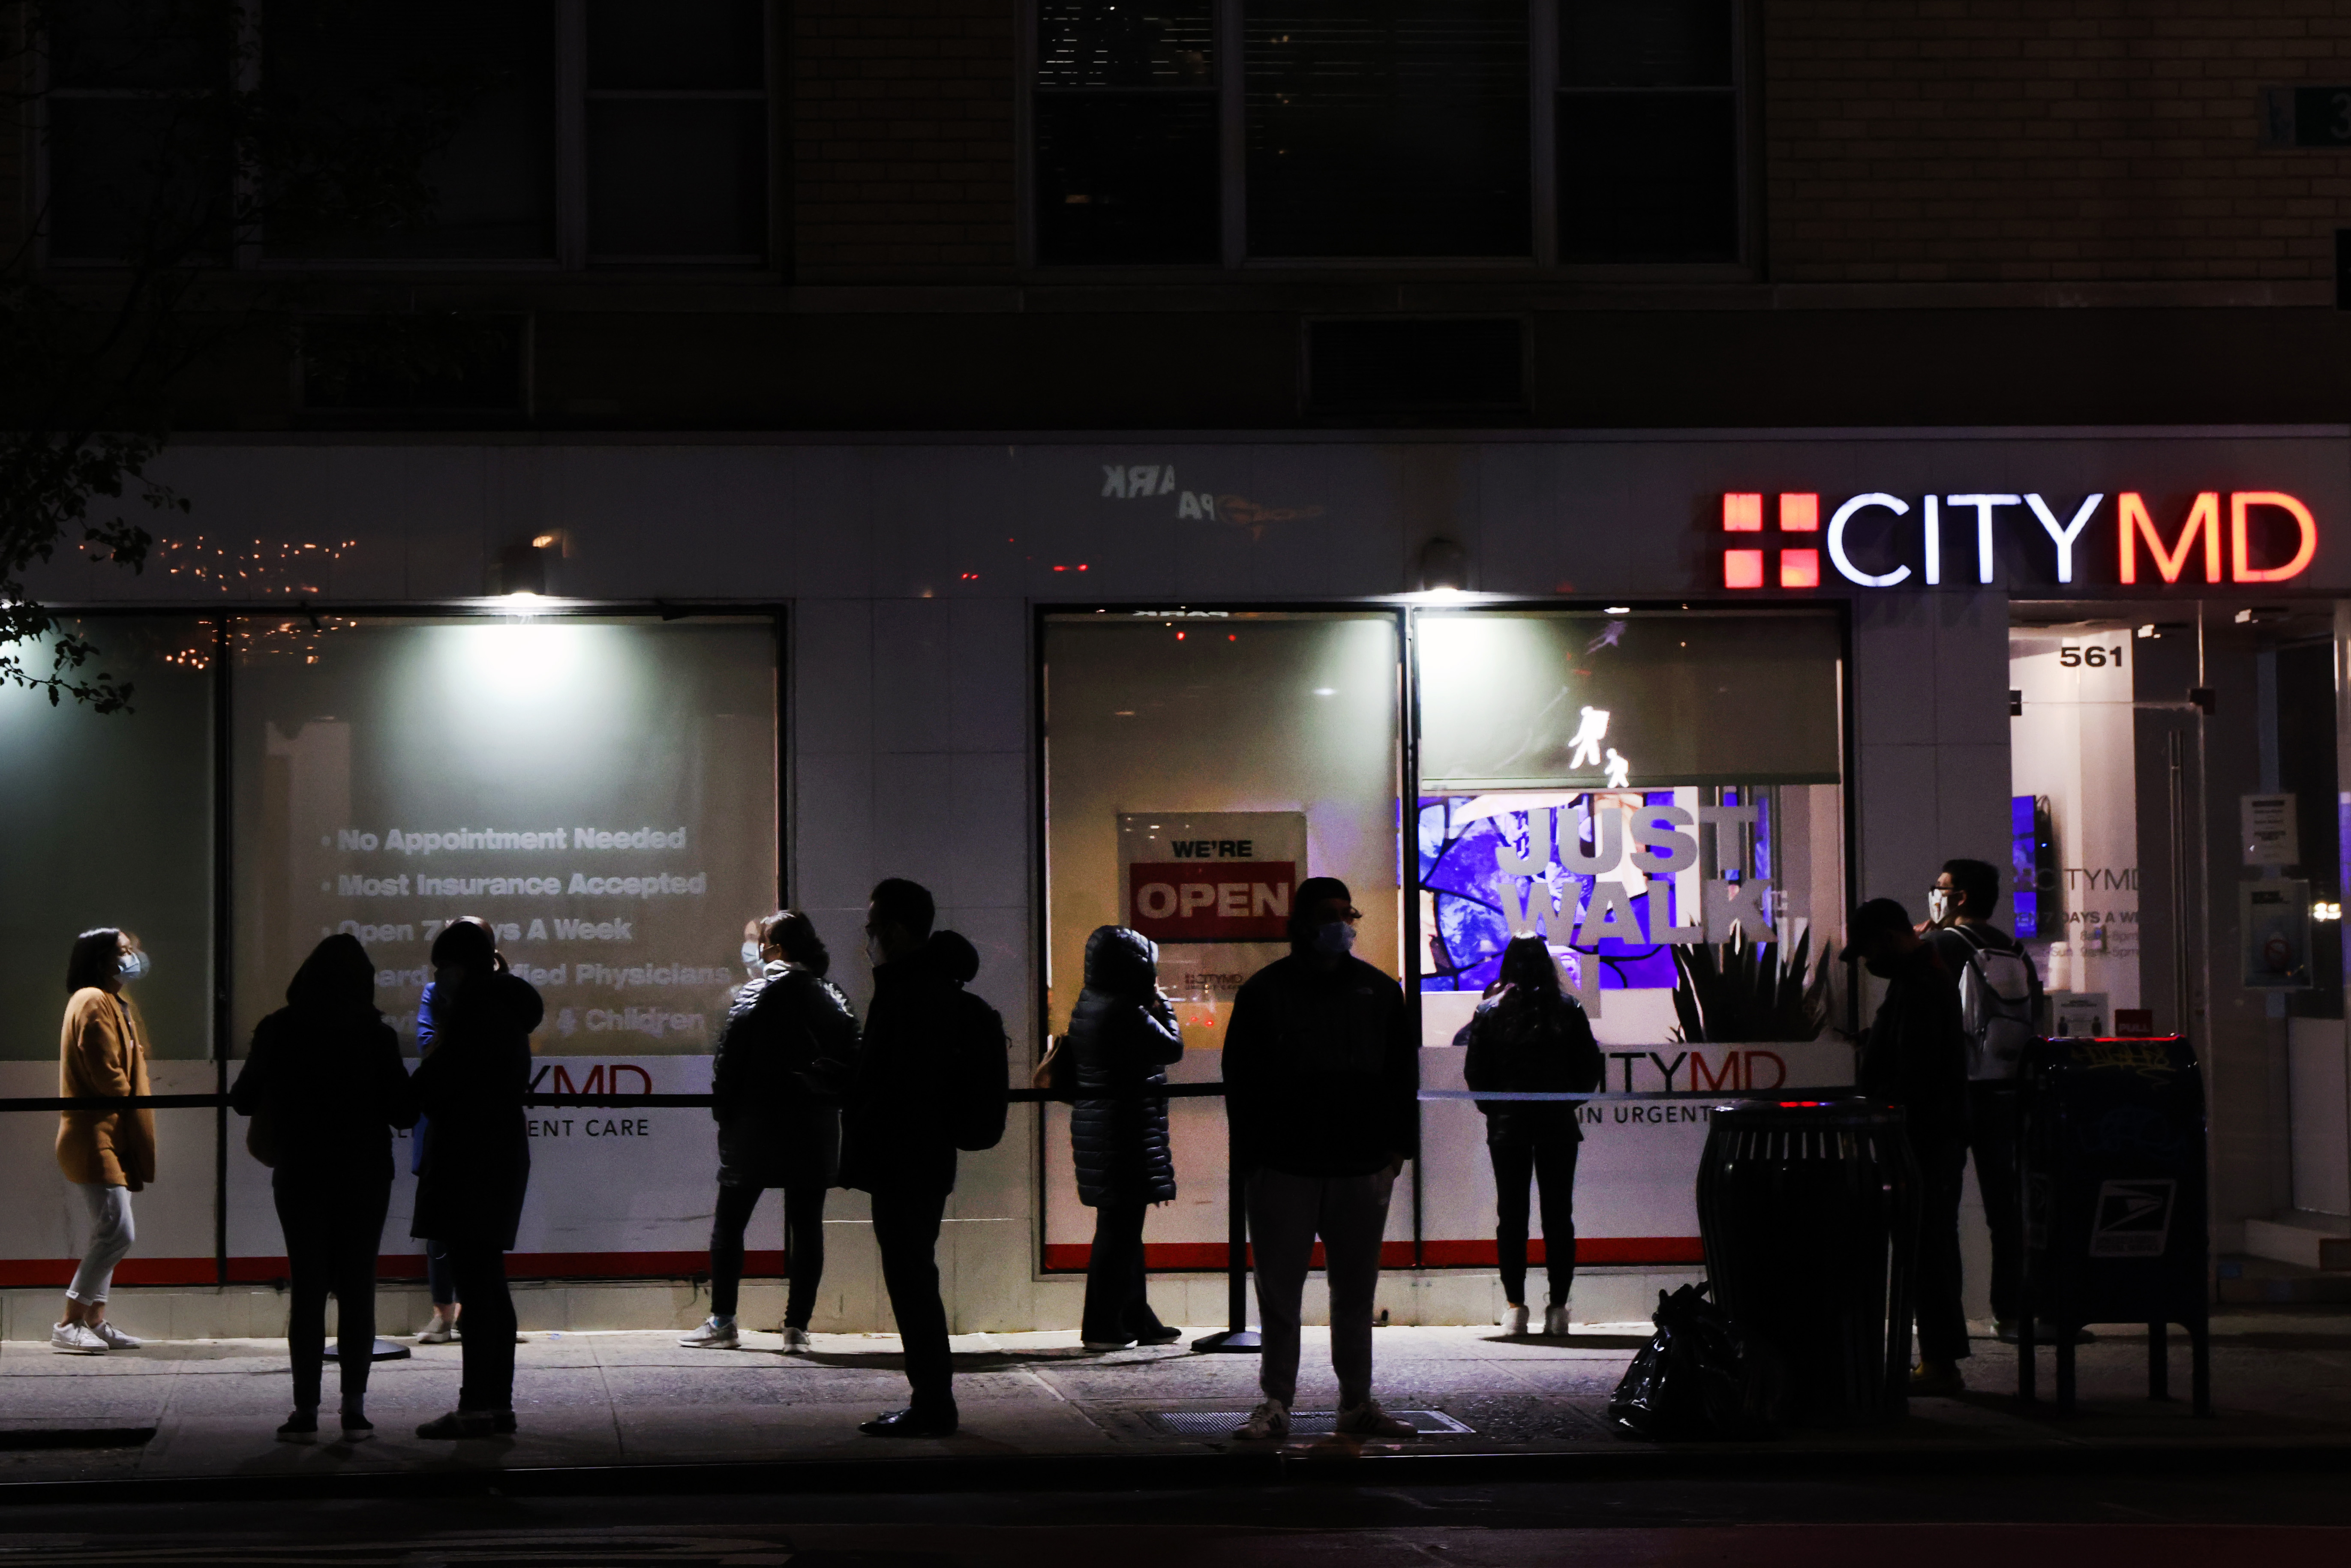 People wait in line for COVID-19 tests on Nov. 16 in New York City, where the mayor announced that rising infections were forcing schools to close down less than two months after they'd reopened for in-person learning.